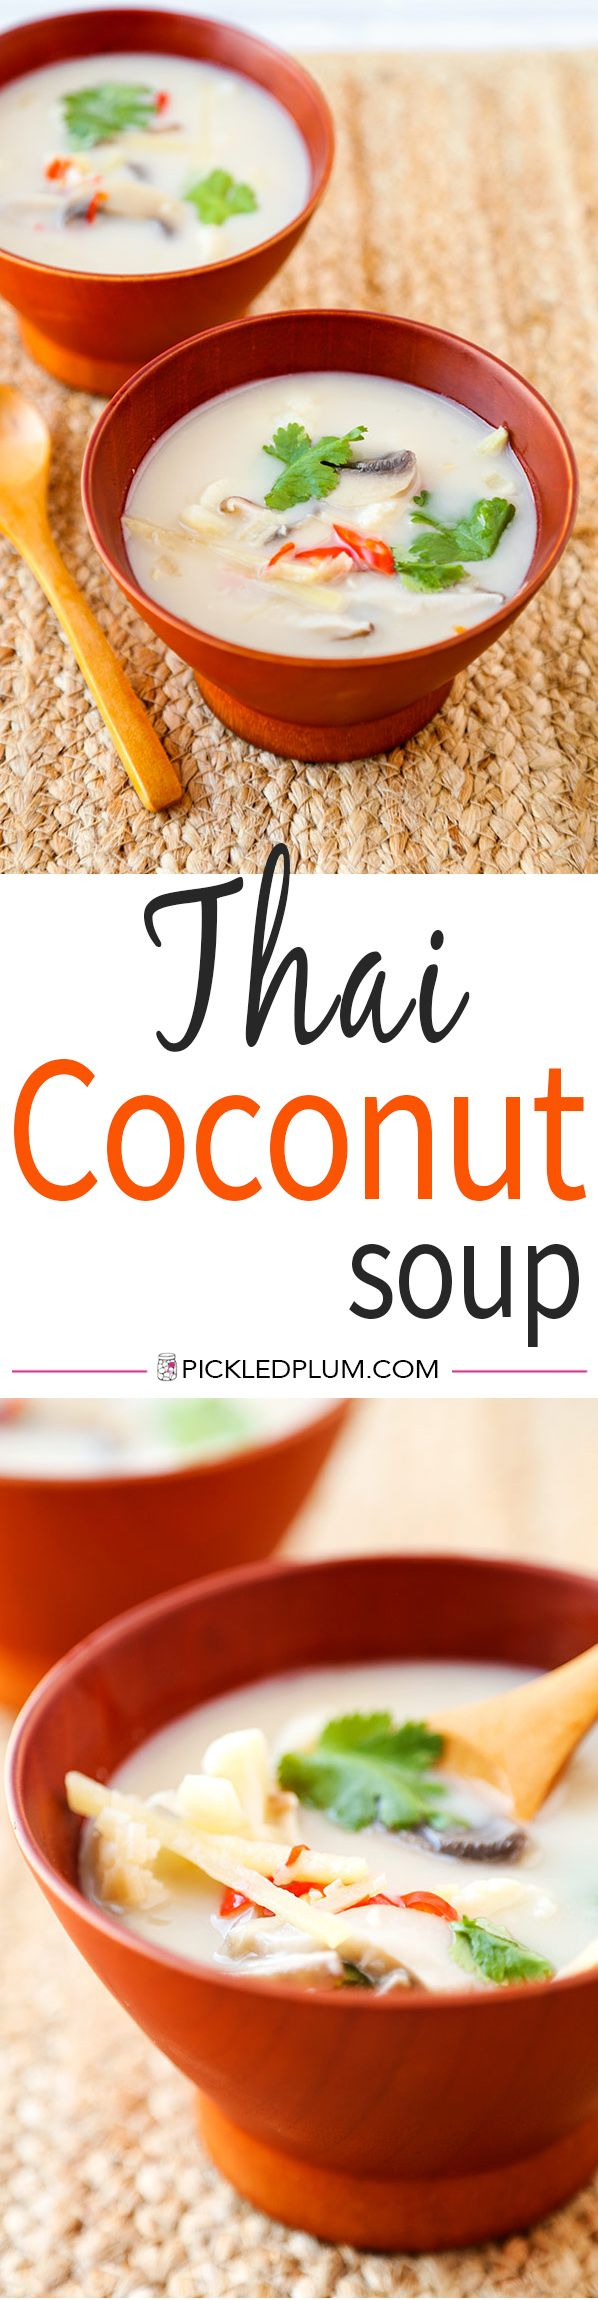 Thai Coconut Soup - Cauliflower replaces chicken in this fragrant, luscious and healthy Thai Coconut Soup. Ready in 17 minutes from start to finish. Recipe, soup, Thai food, coconut, cauliflower, appetizer, vegetarian | pickledplum.com